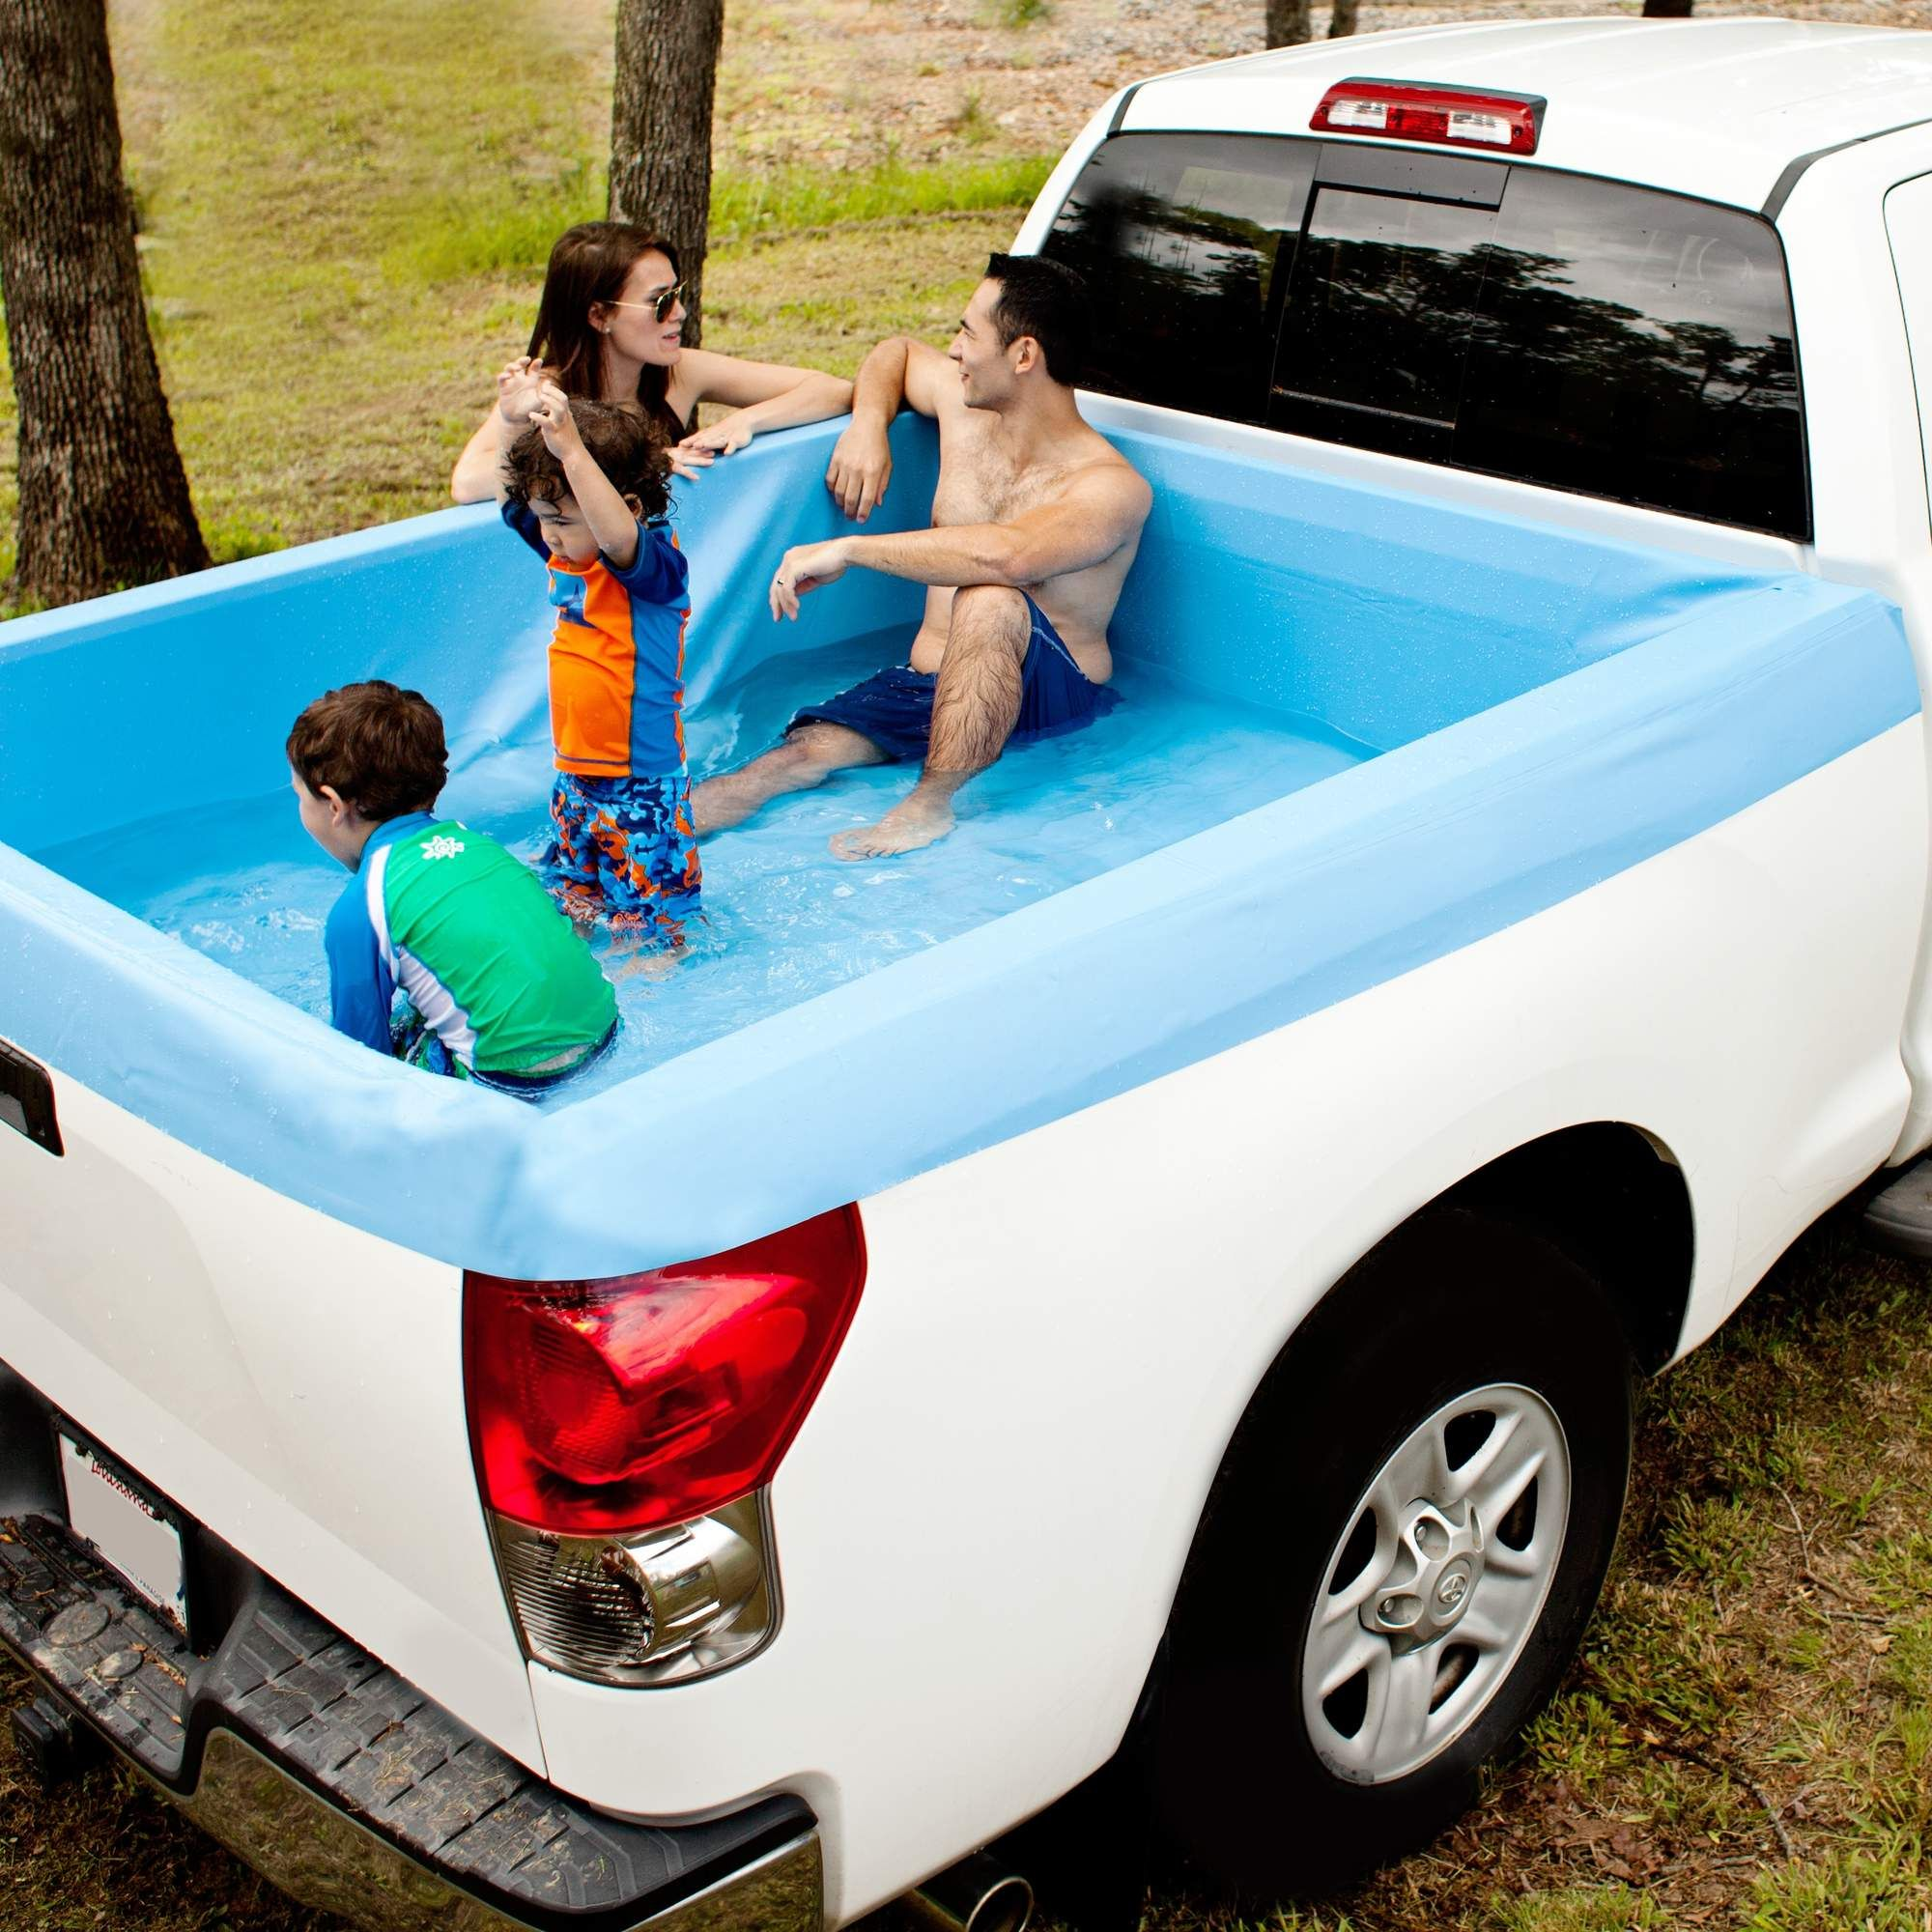 Put A Pool In Your PickUp Truck Pickup trucks bed